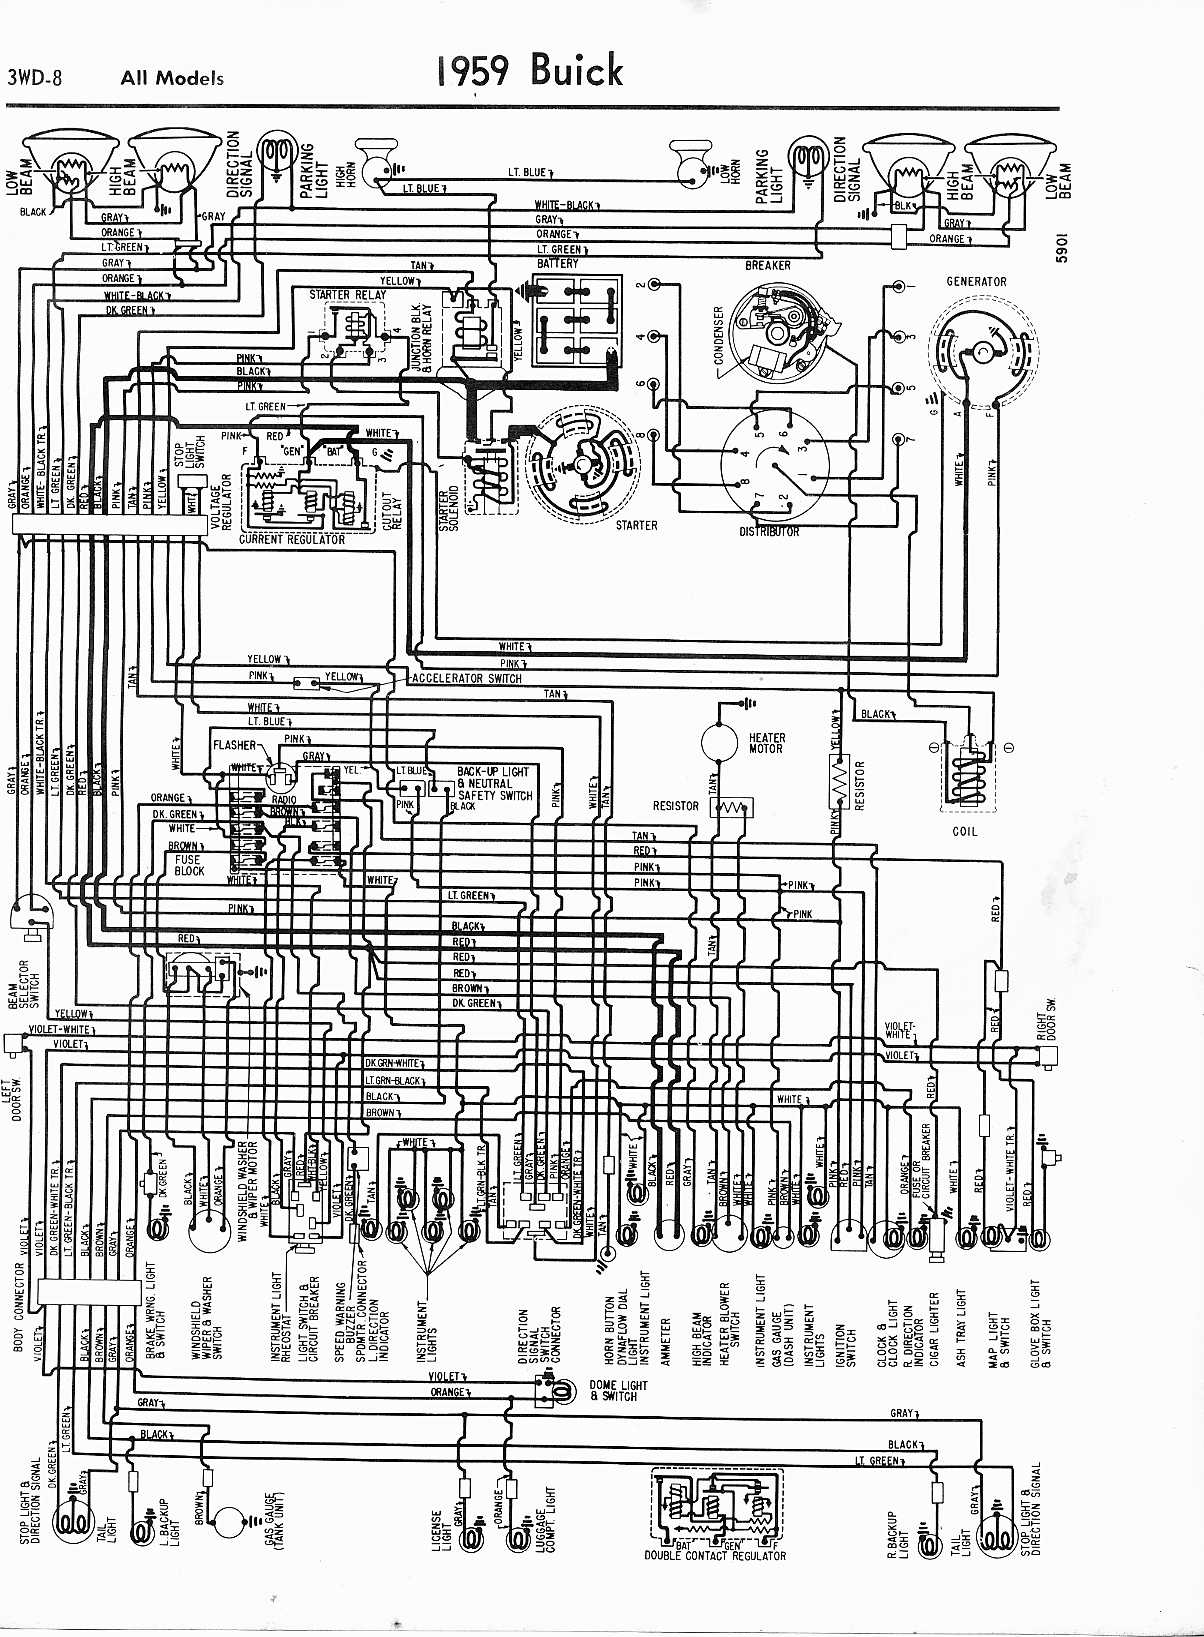 Buick Lesabre Engine Problems On 97 Buick Lesabre Engine Diagram